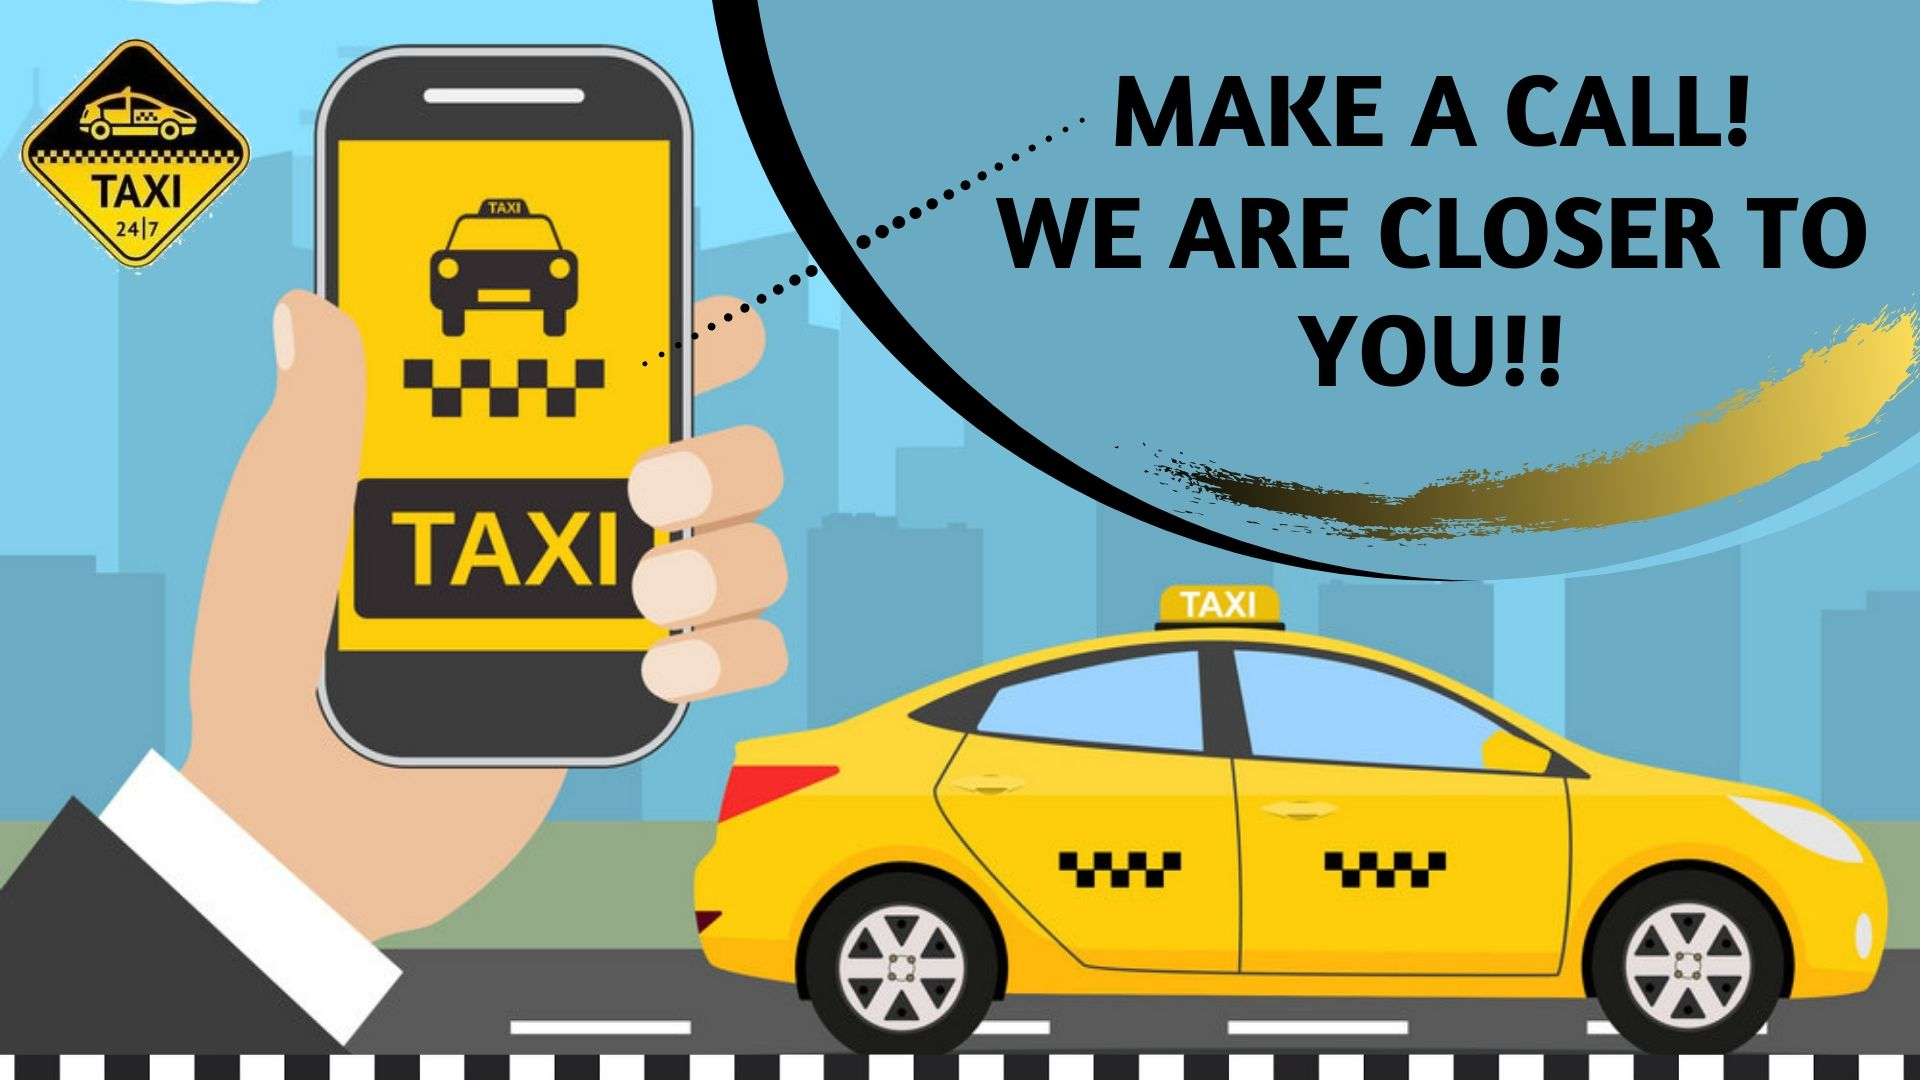 Your Trusted Ride For Every Occasion Taxi Cab Taxi Cab [ 1080 x 1920 Pixel ]